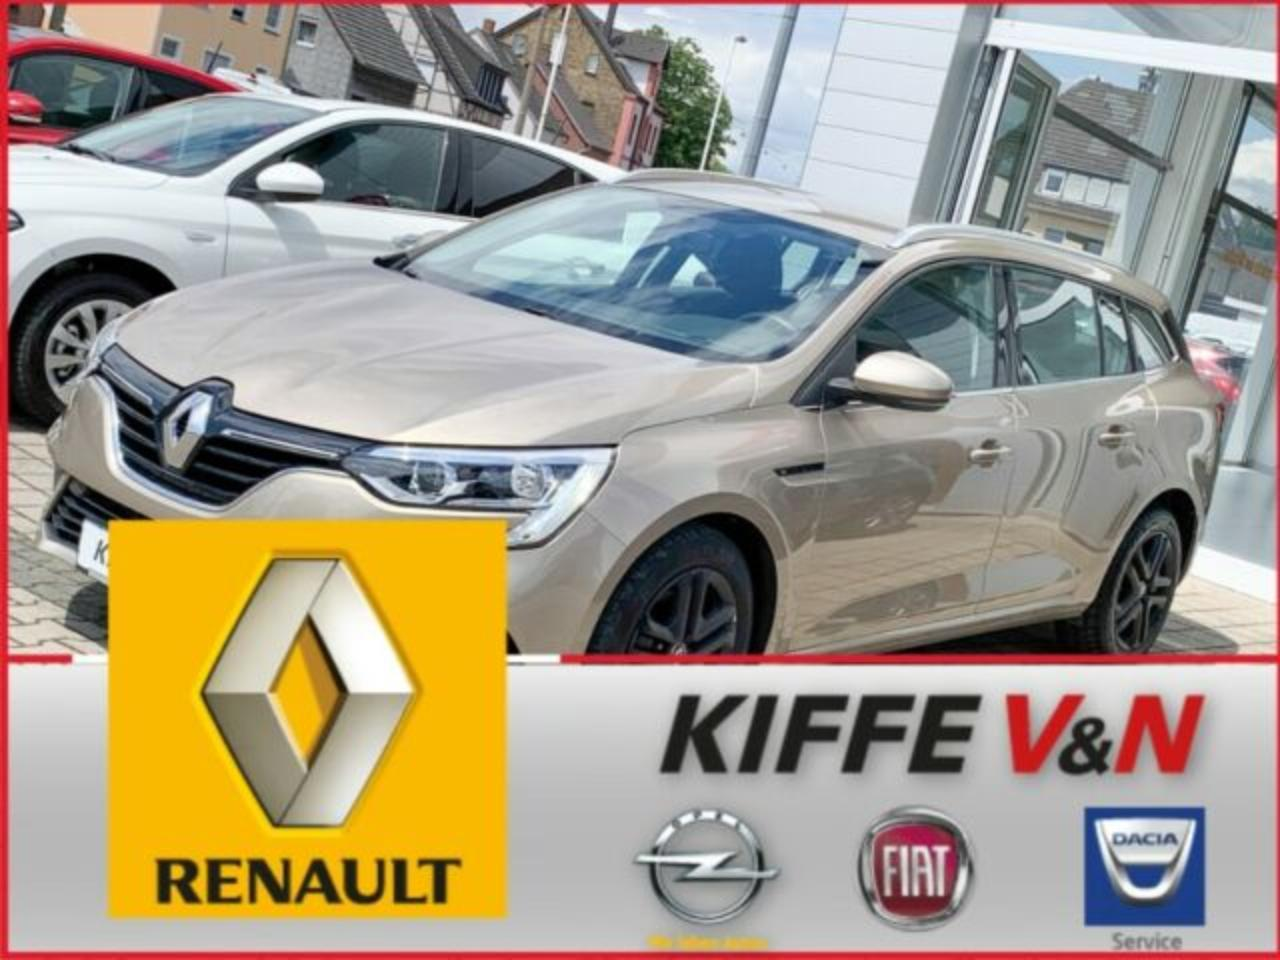 Renault Megane 1.2 Grandtour Experience TCe 100 PDC DAB